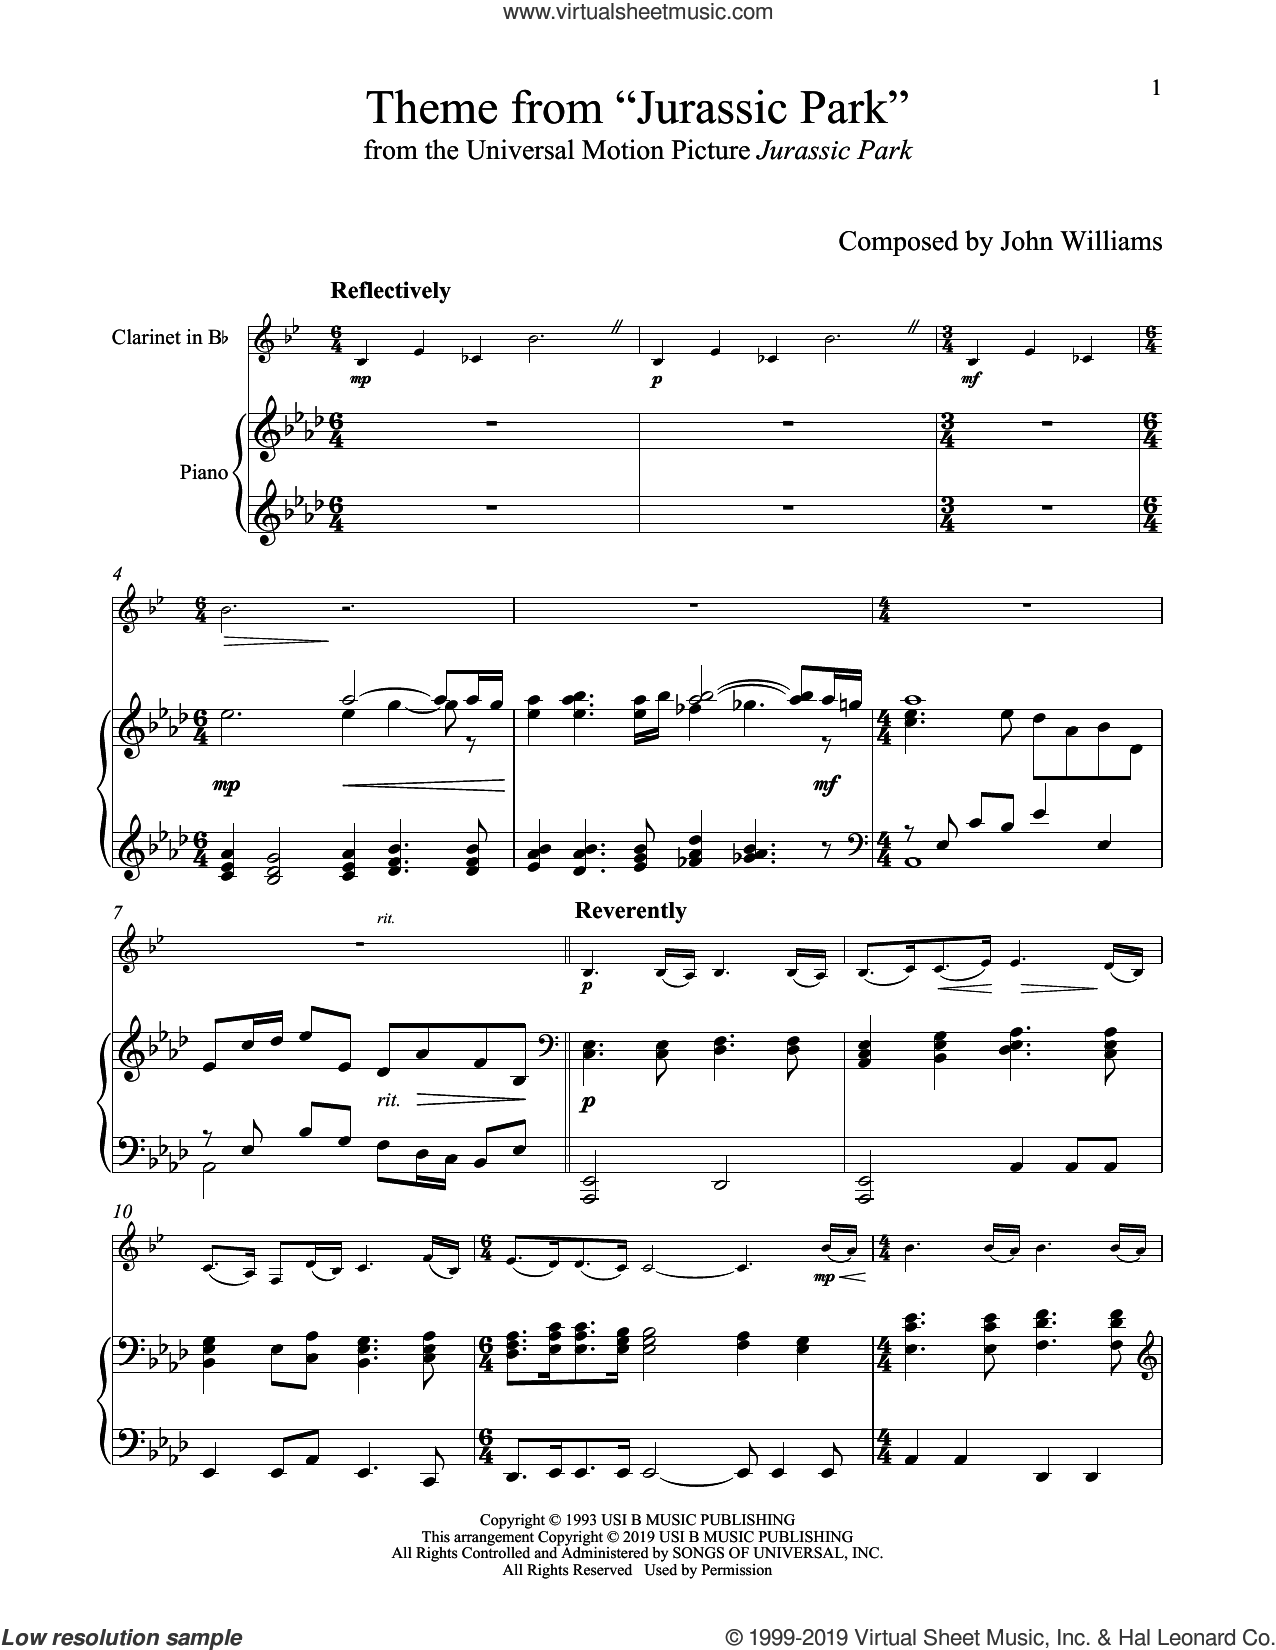 Theme From 'Jurassic Park' sheet music for clarinet and piano by John Williams, intermediate skill level